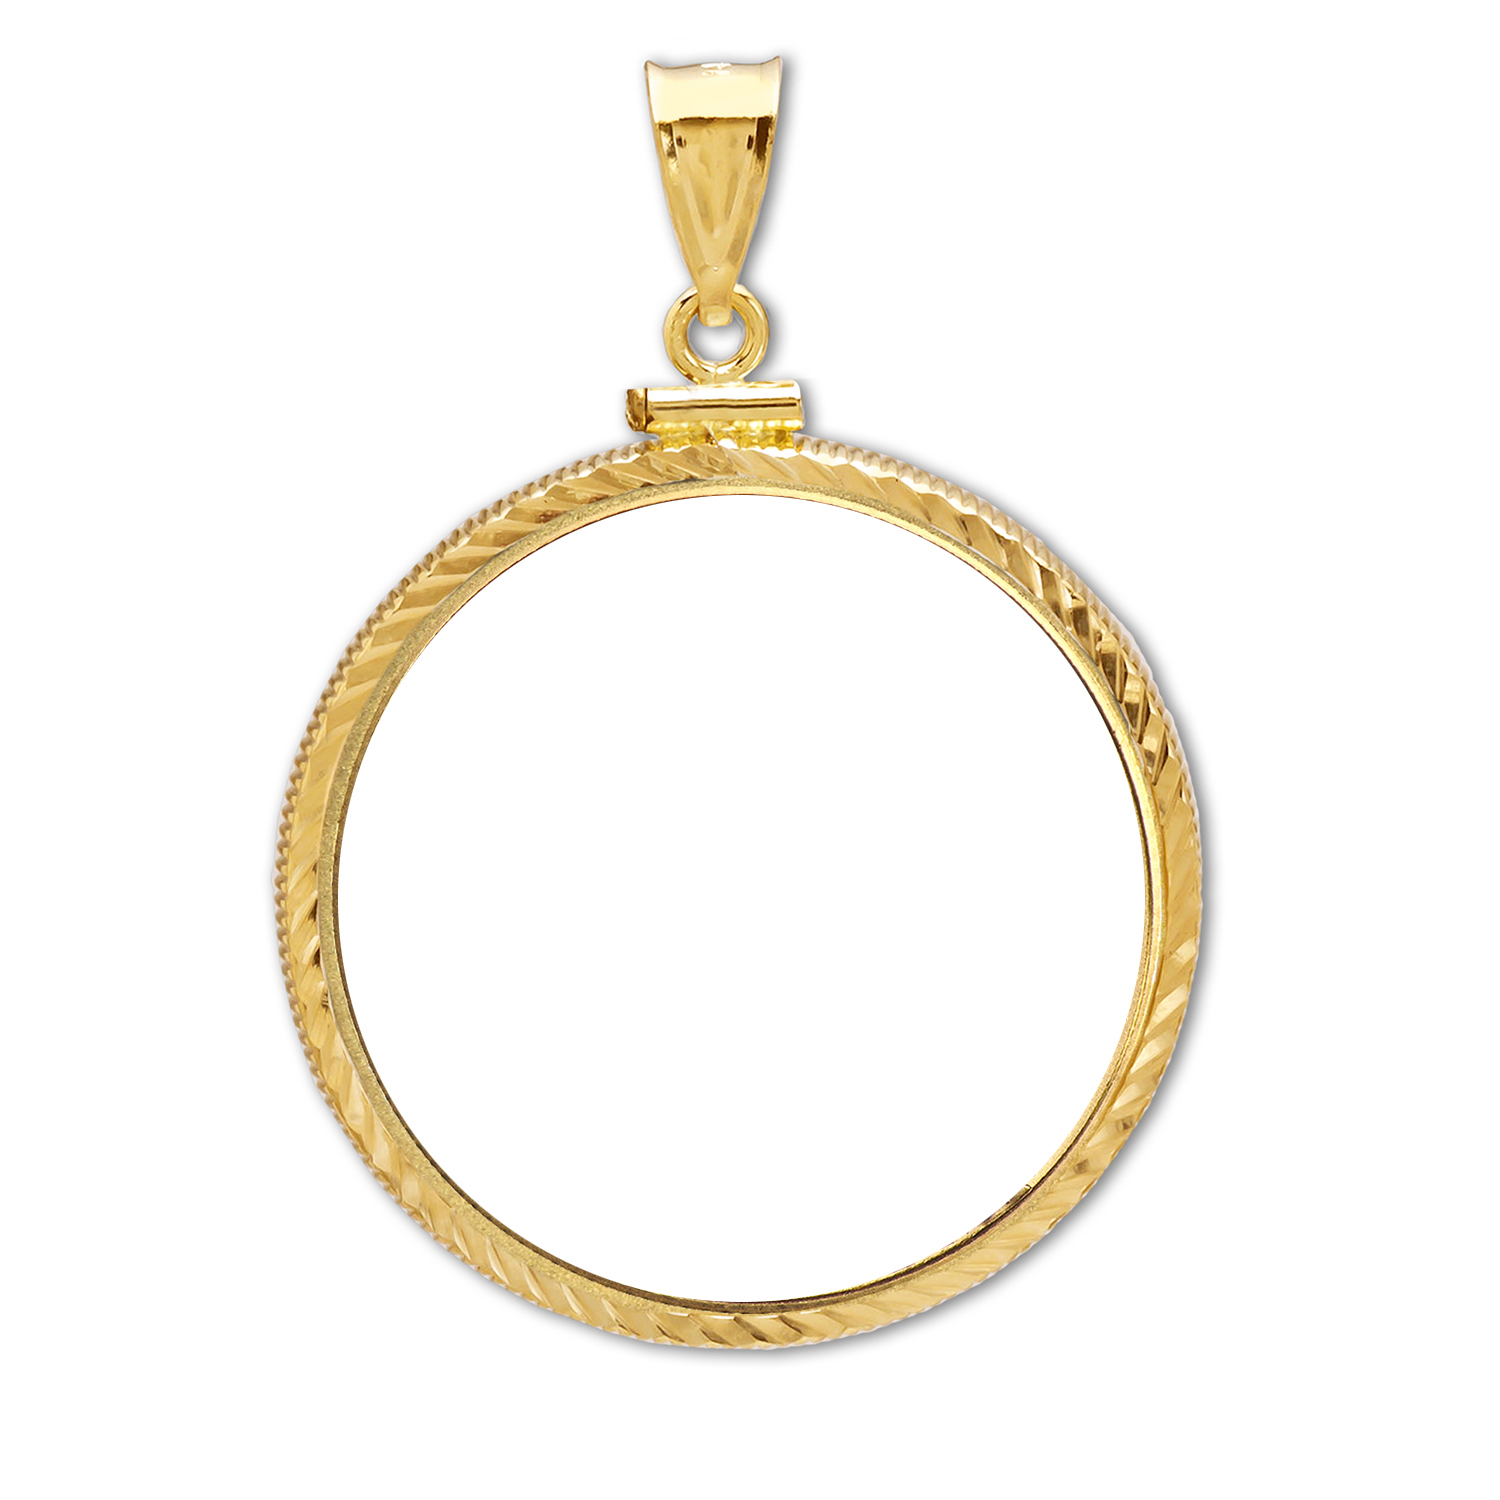 14K Gold Screw-Top Diamond-Cut Coin Bezel - 22 mm